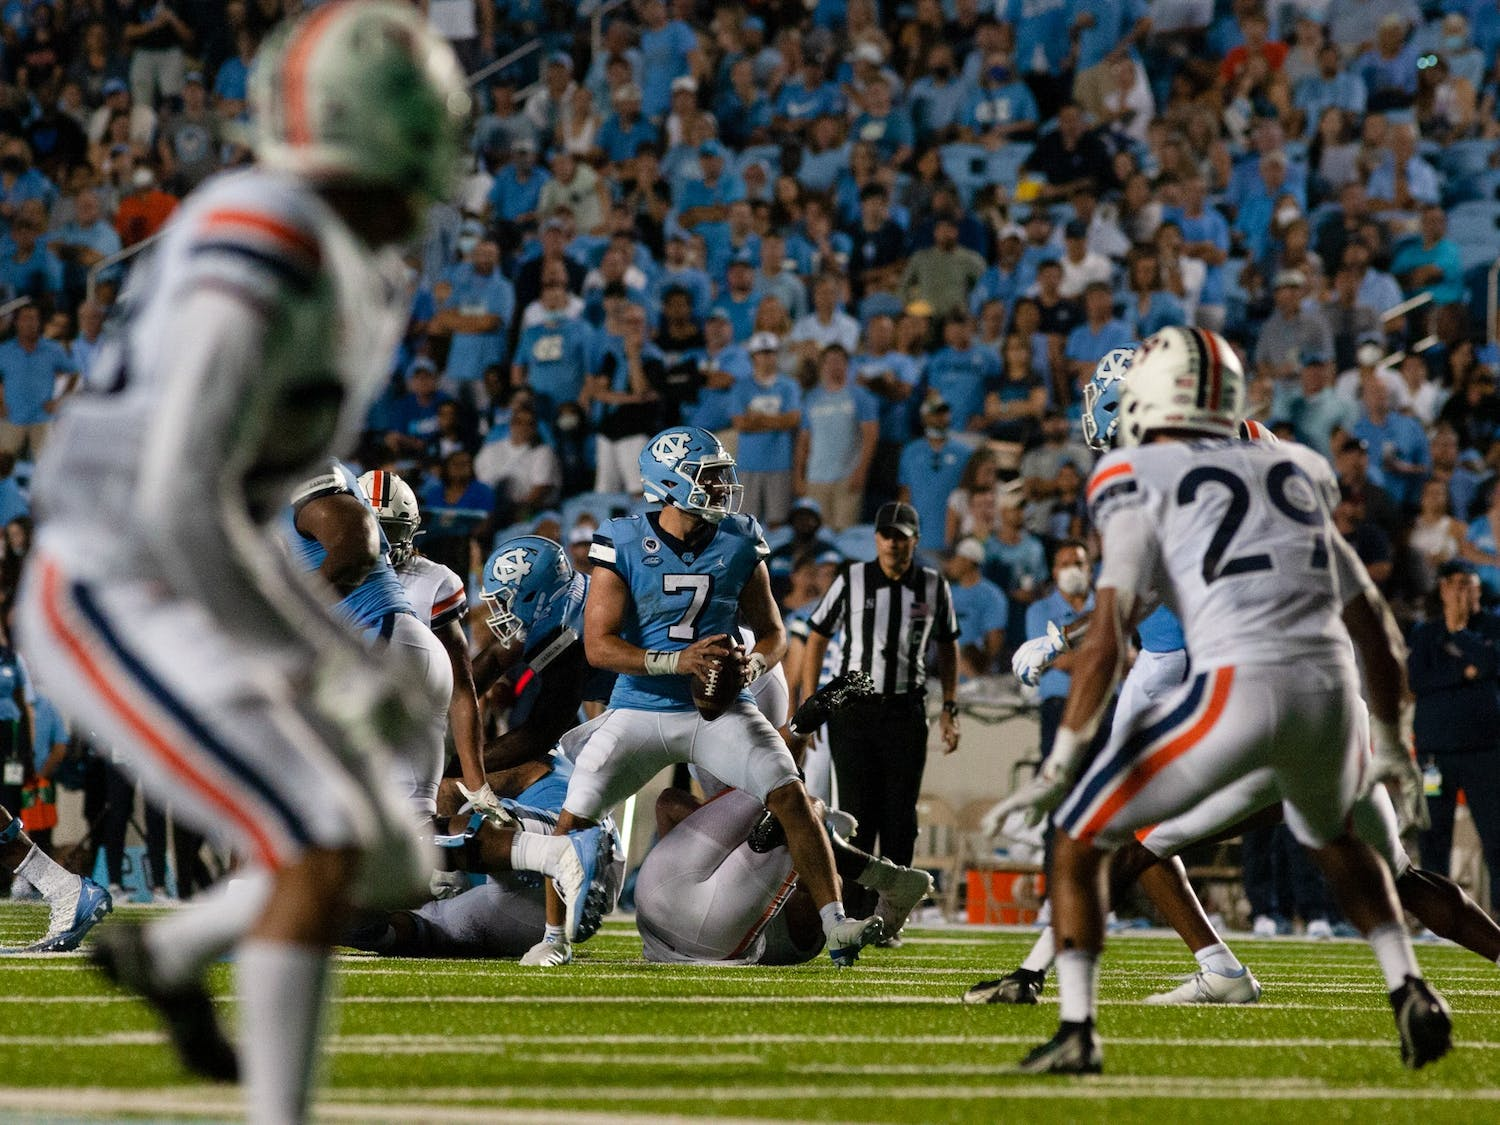 UNC junior quarterback Sam Howell (7) prepares for a long pass down the field in the second quarter against the University of Virginia. UNC defeated the Cavaliers 59-39, their second win of the season.